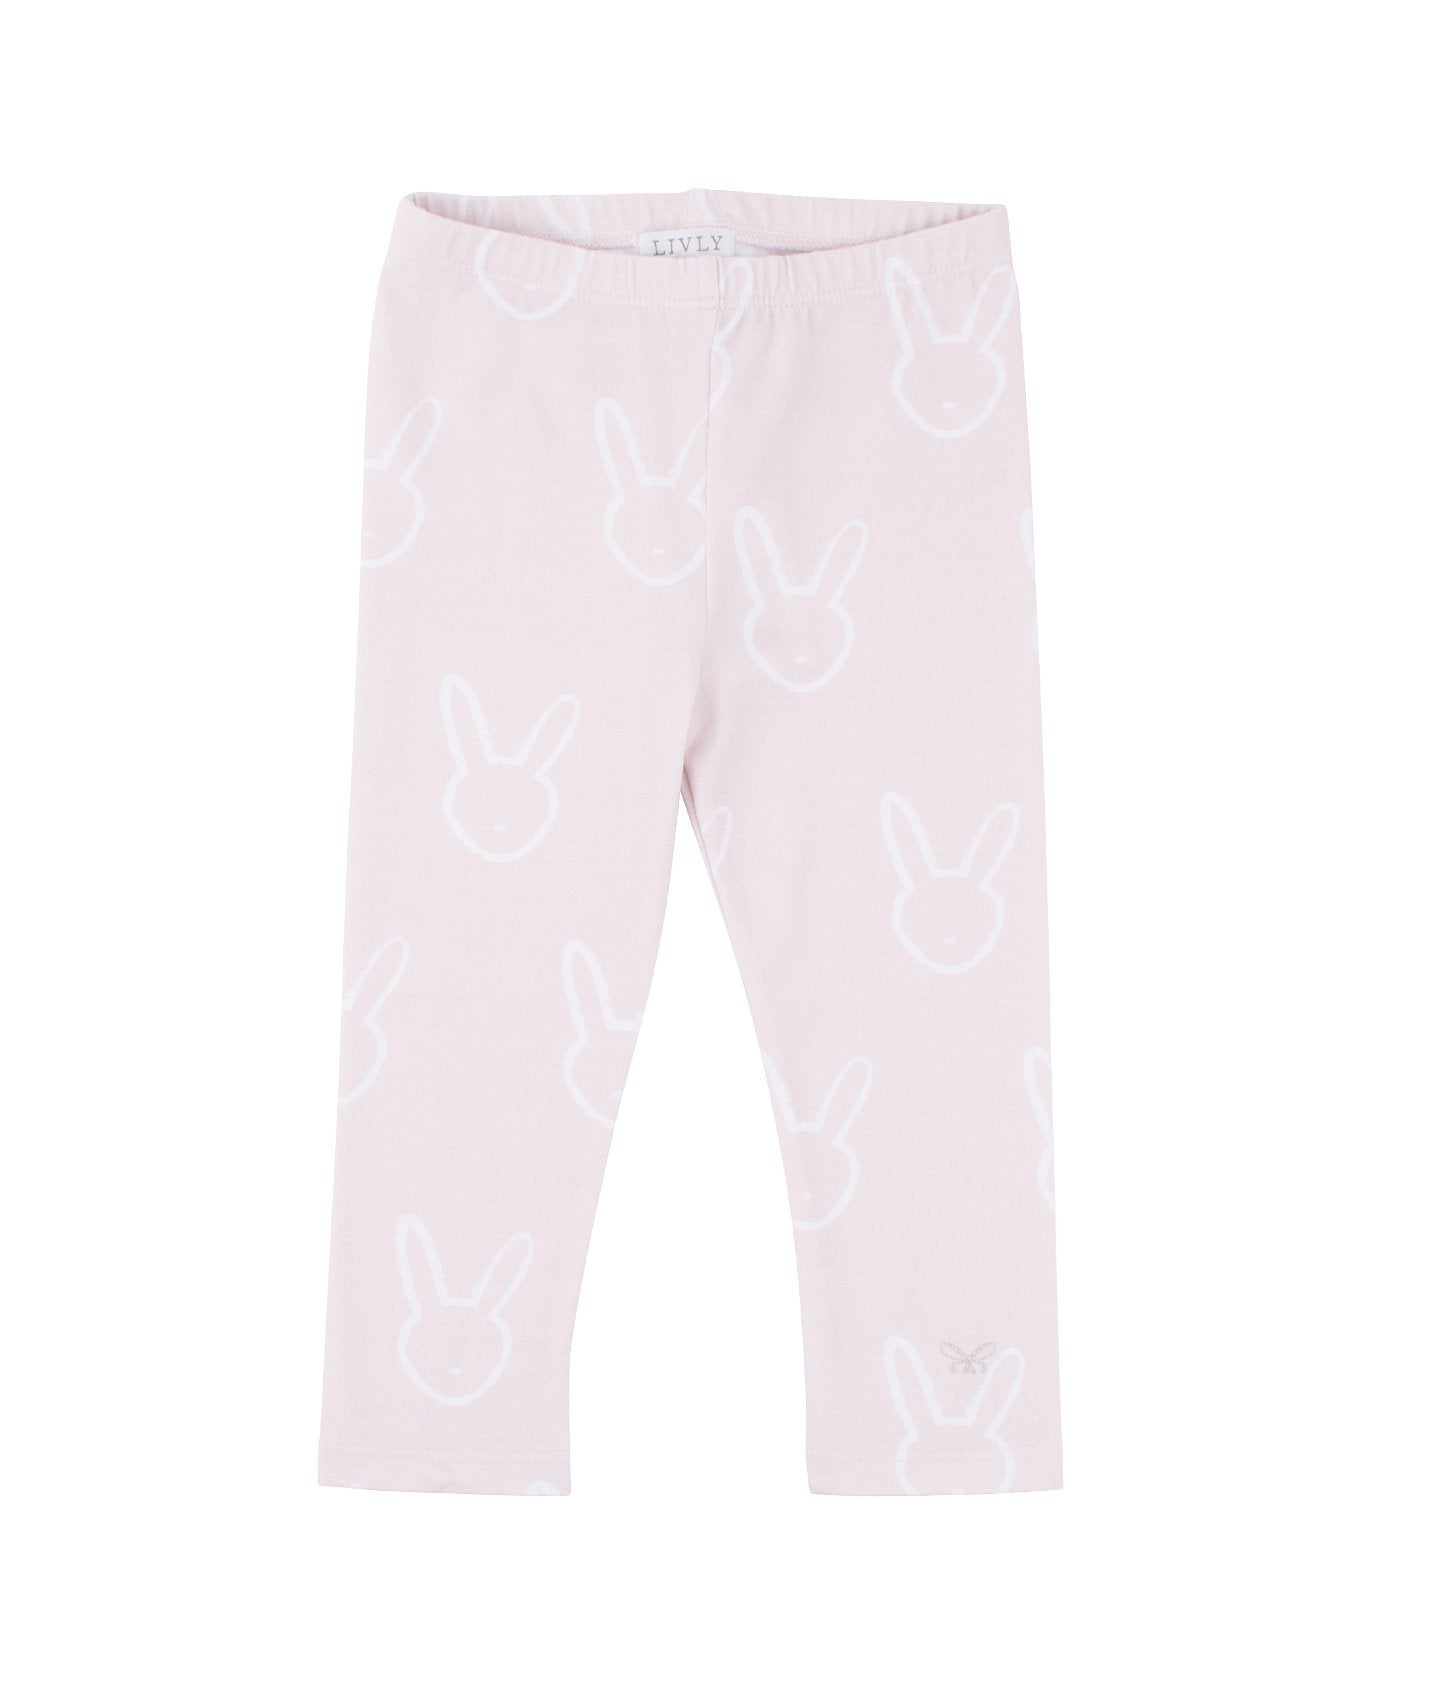 Image of Bunny Essential Pants